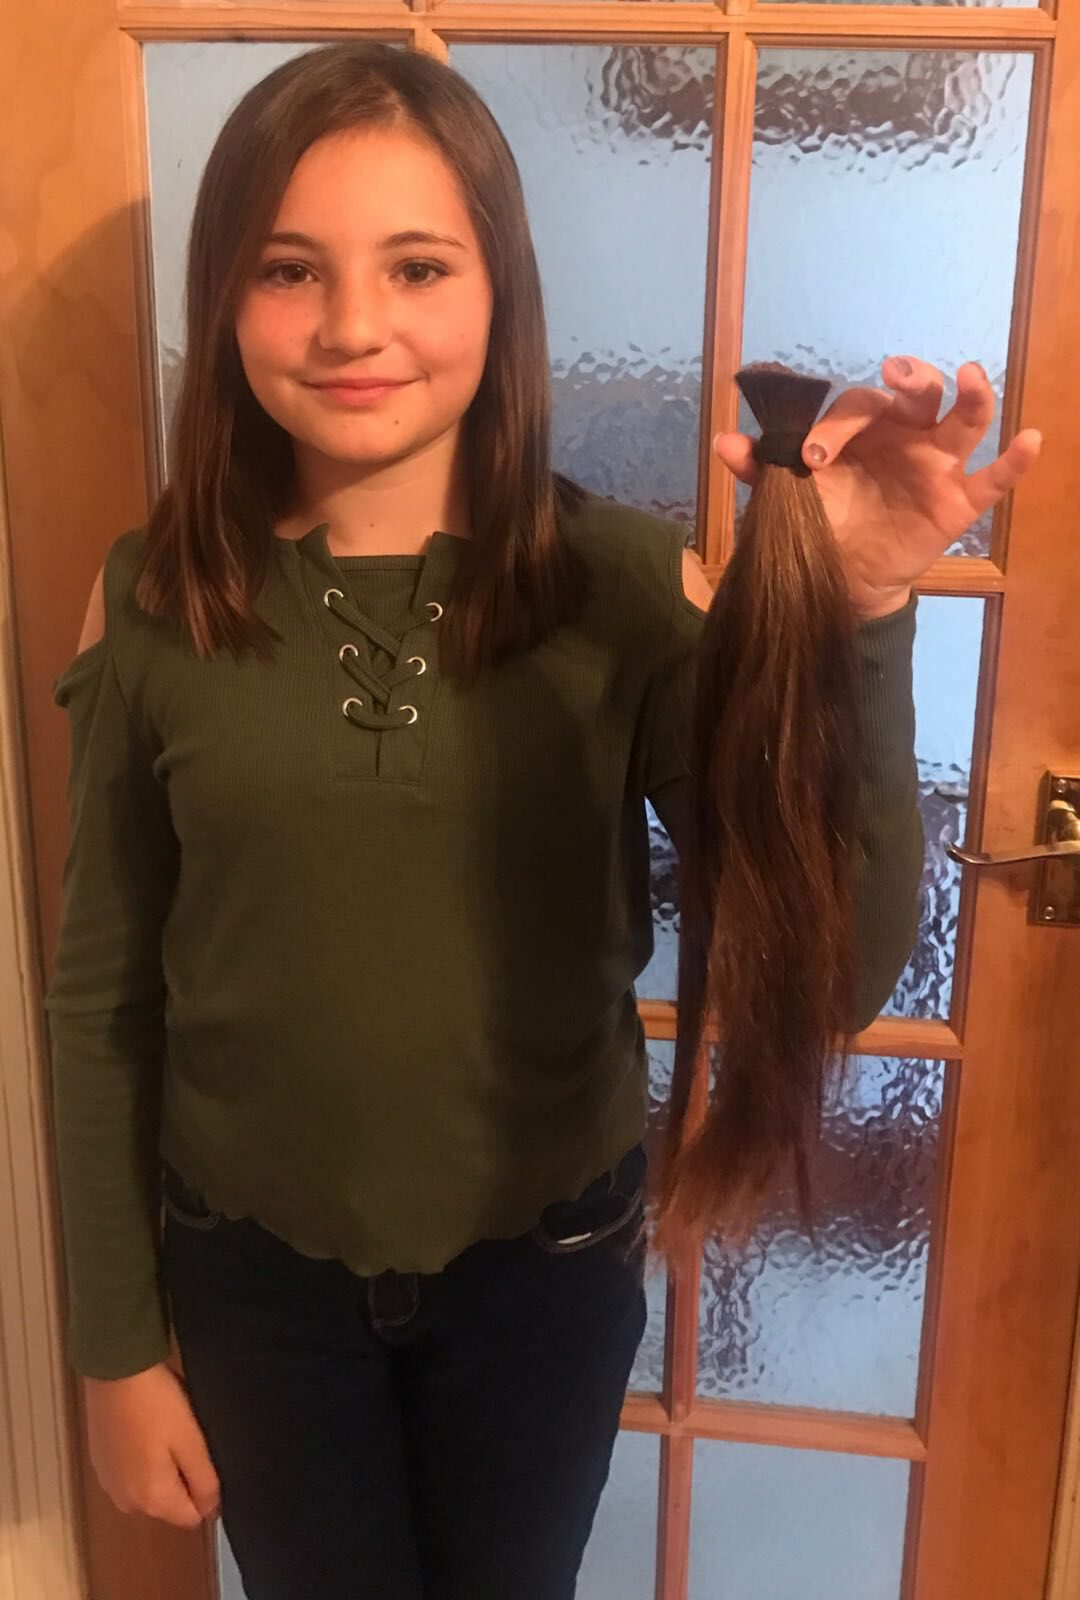 Ruby cut 14 inches off her hair